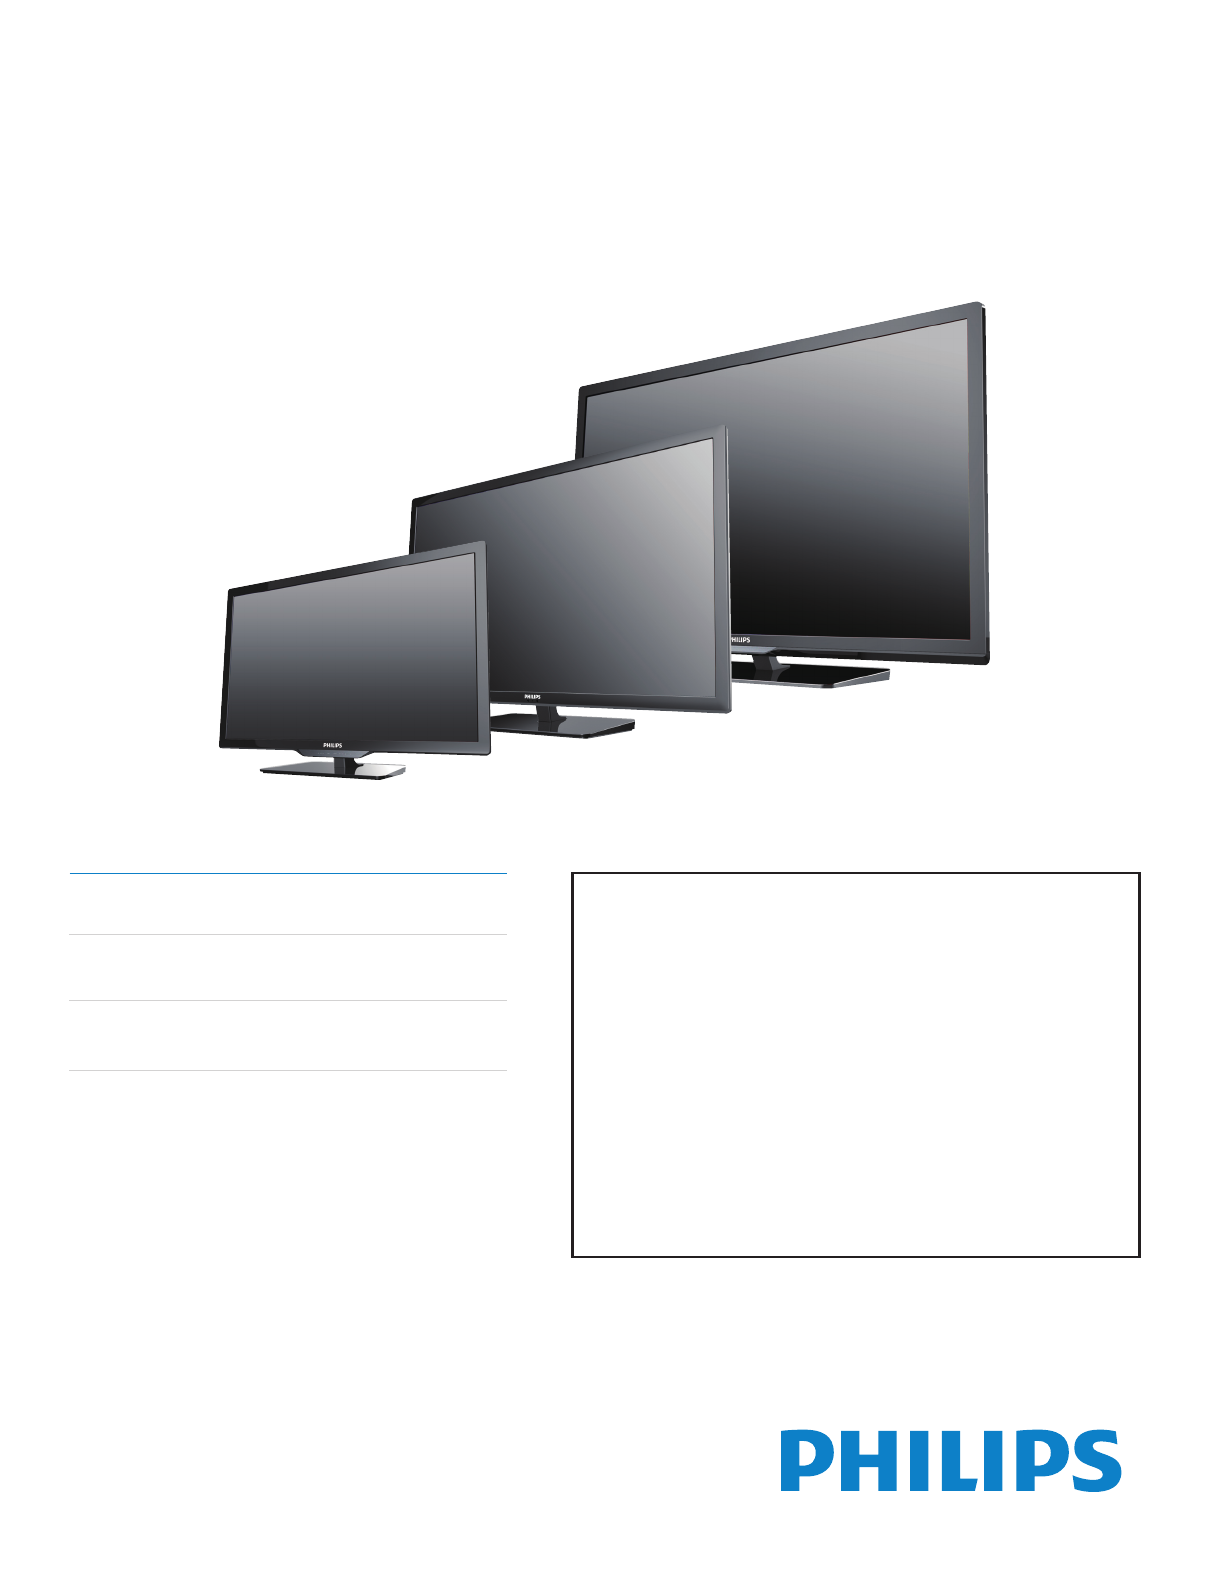 philips flat panel television 29pfl4908 f7 user guide. Black Bedroom Furniture Sets. Home Design Ideas